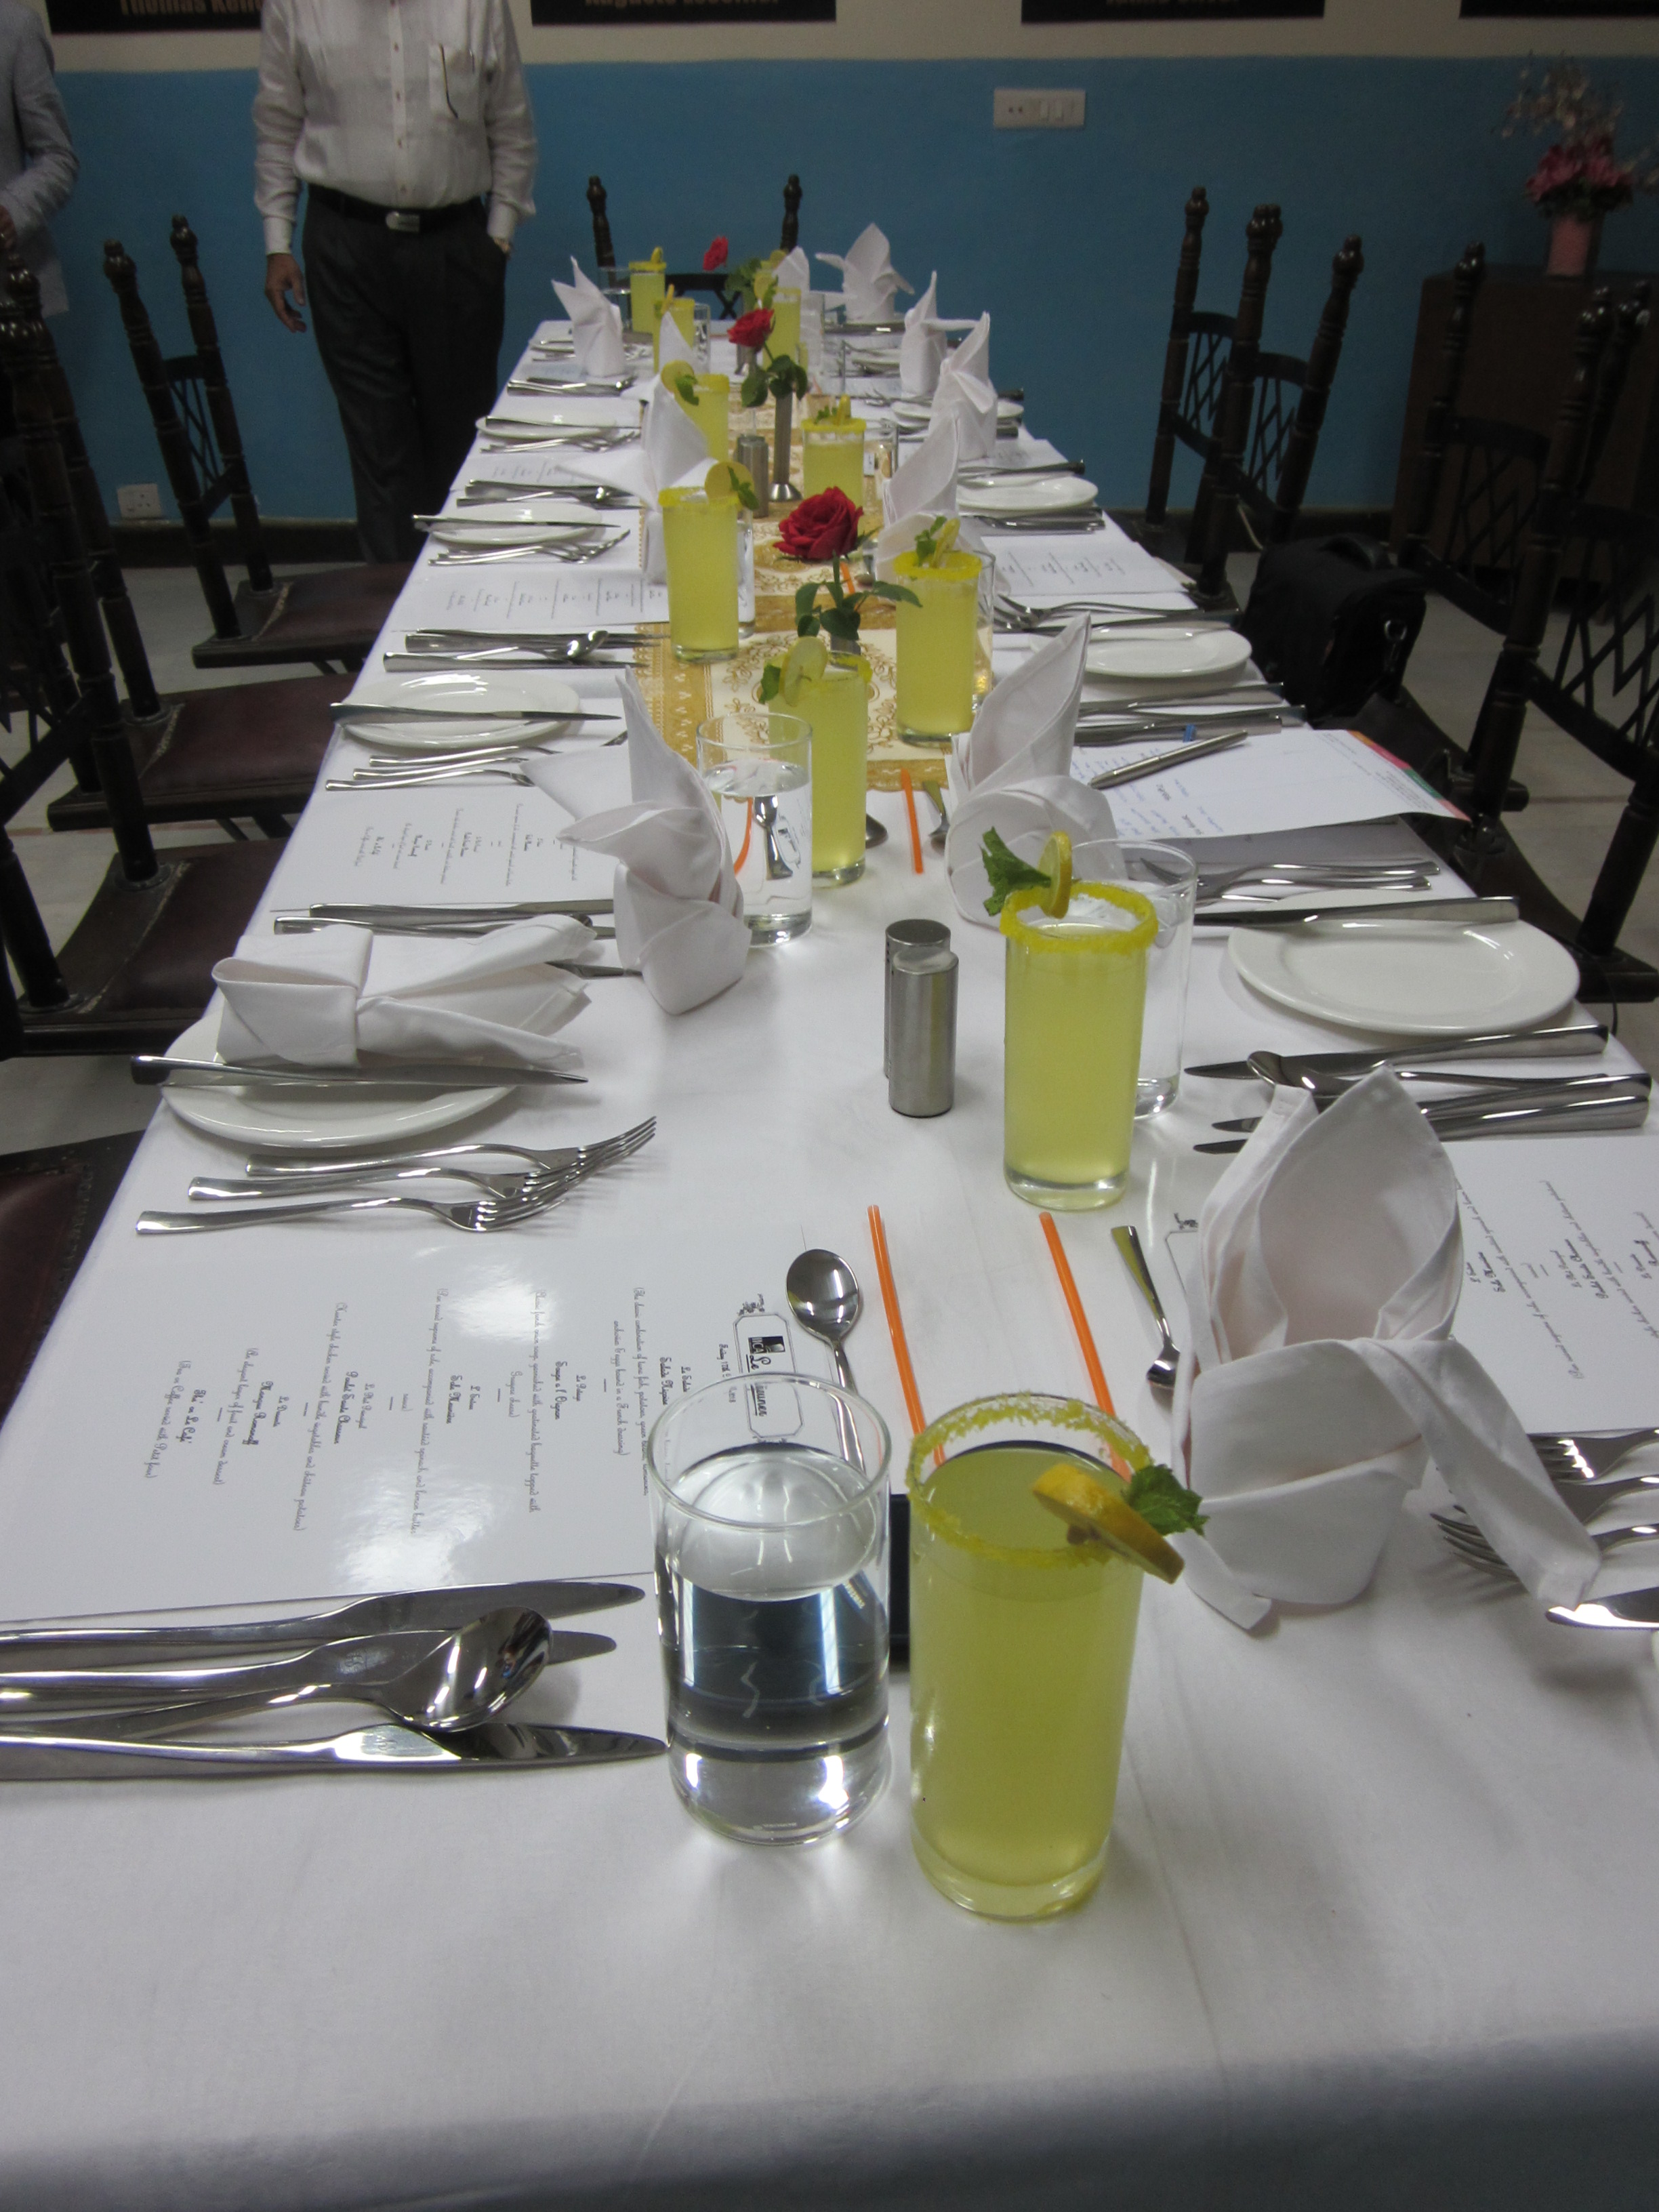 Table Setting In French French Culinarystorm